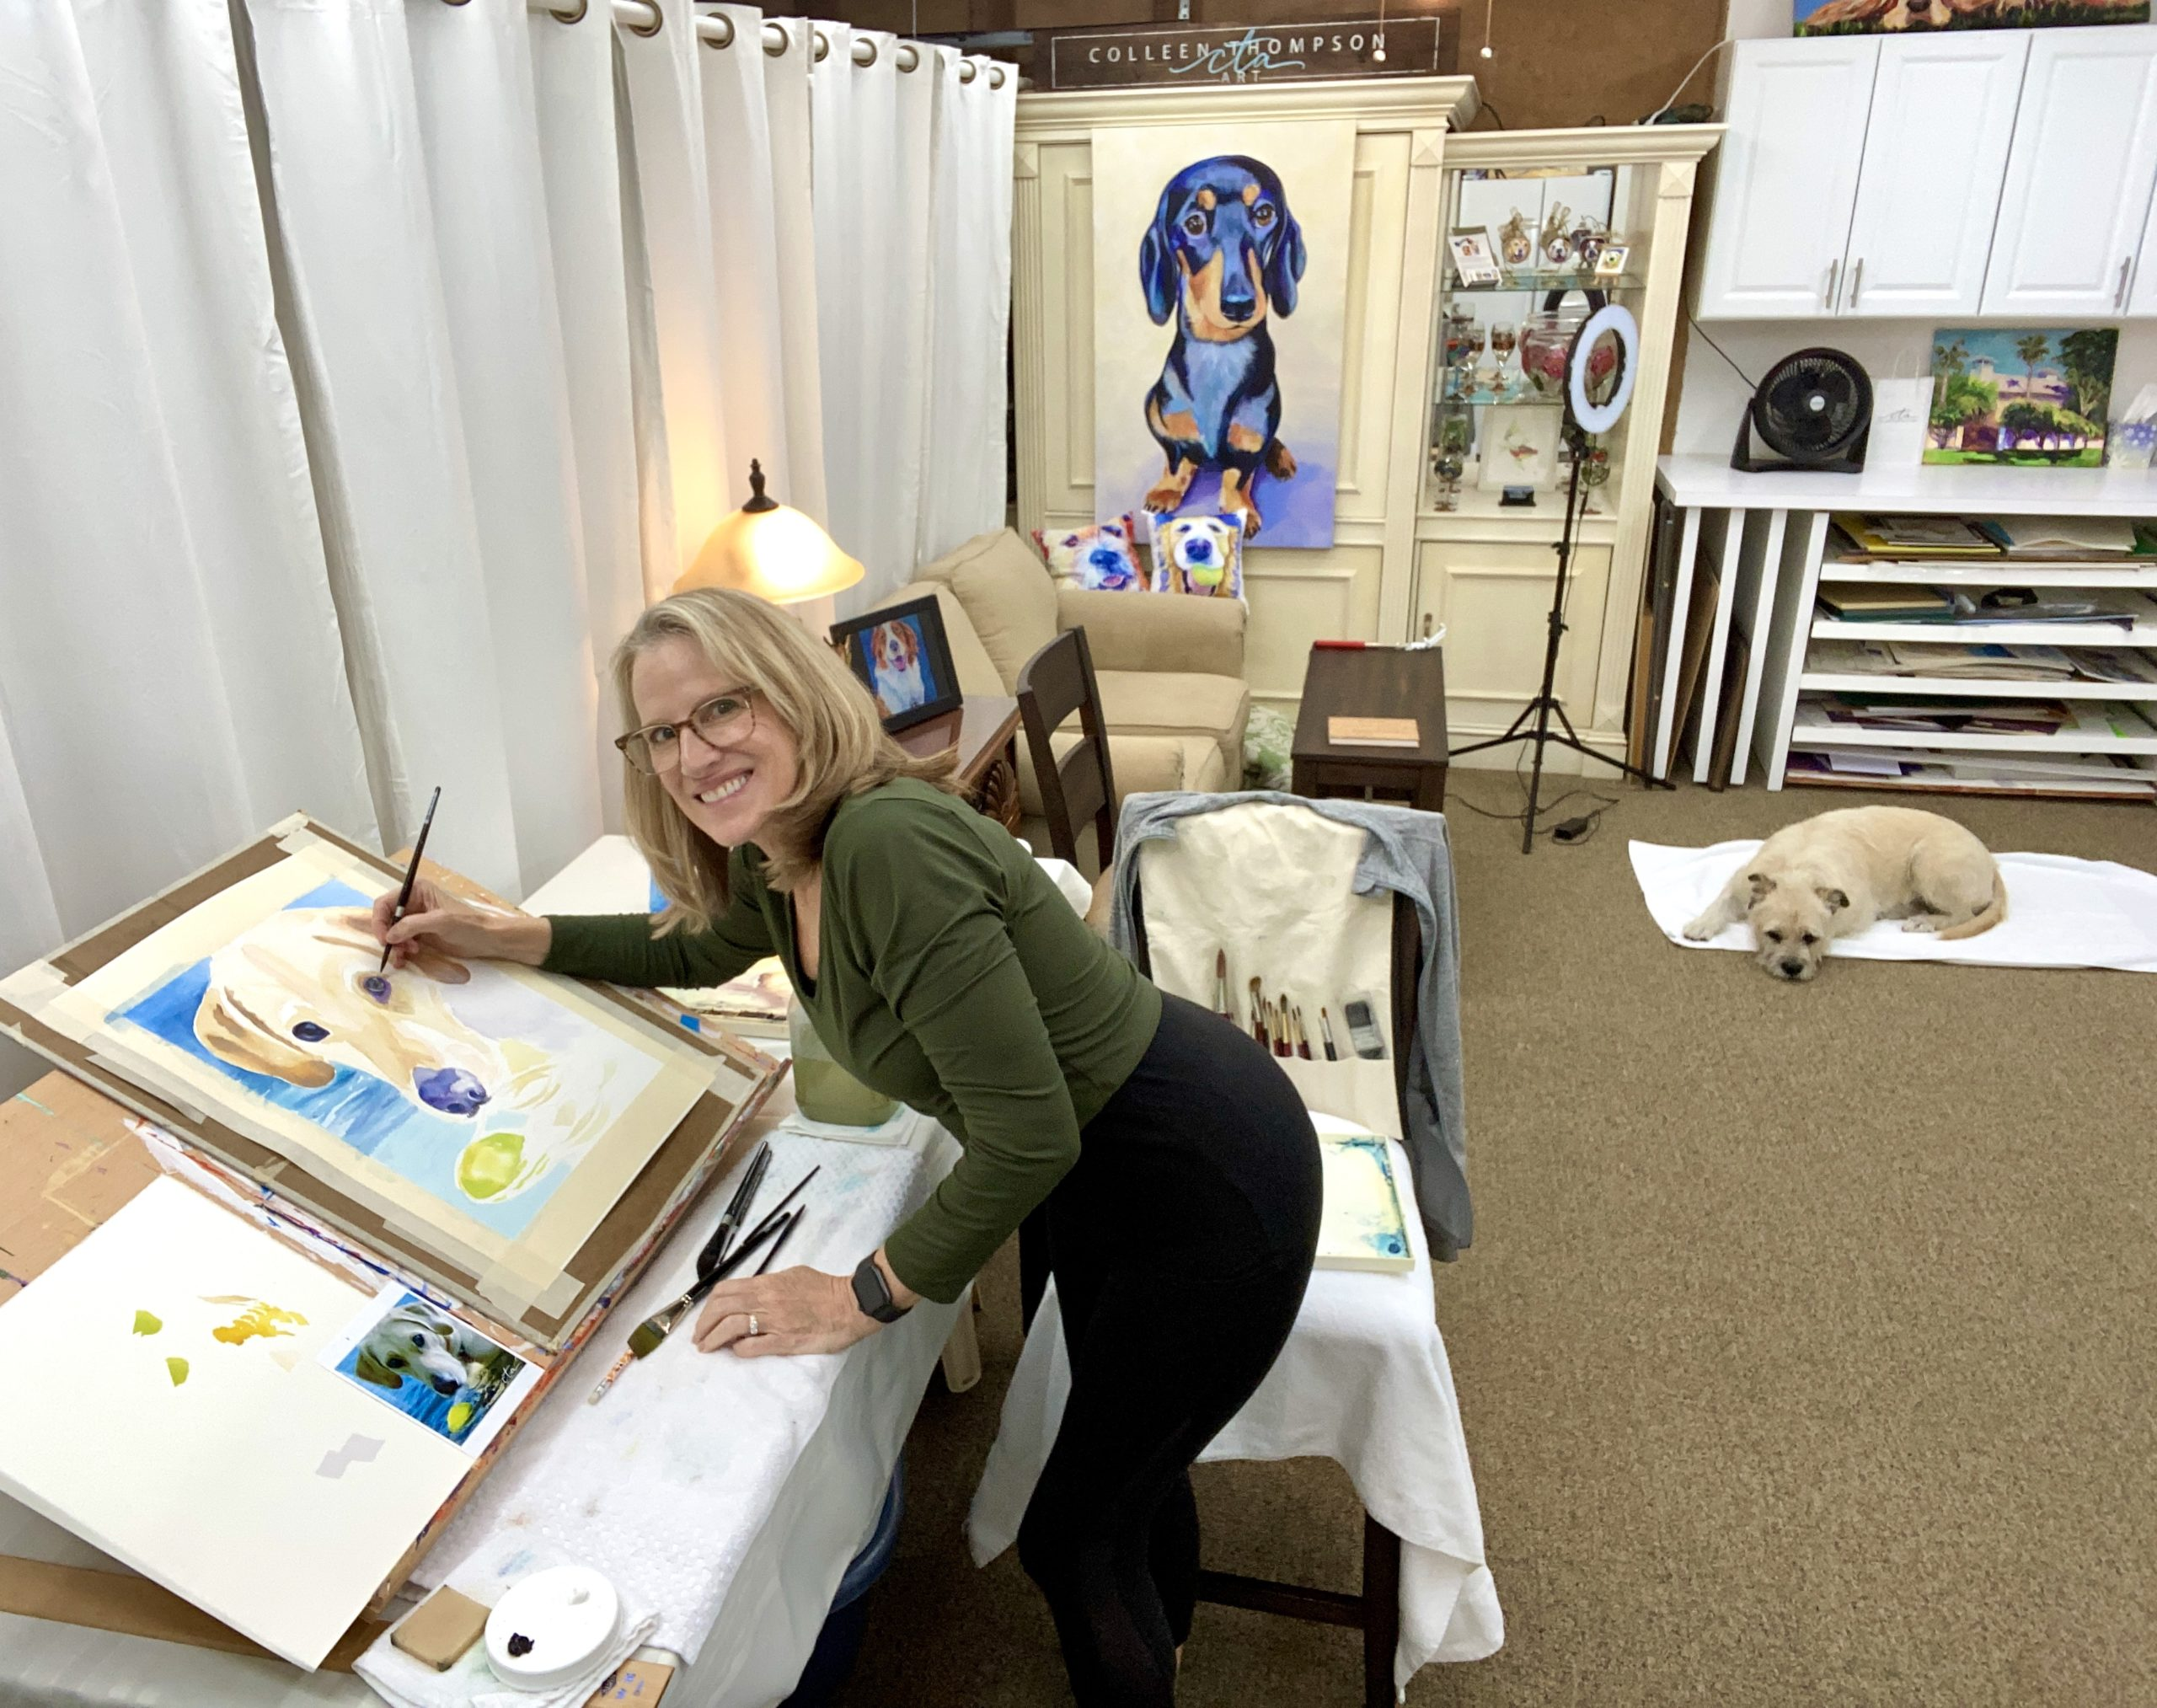 Colleen Thompson in new workspace